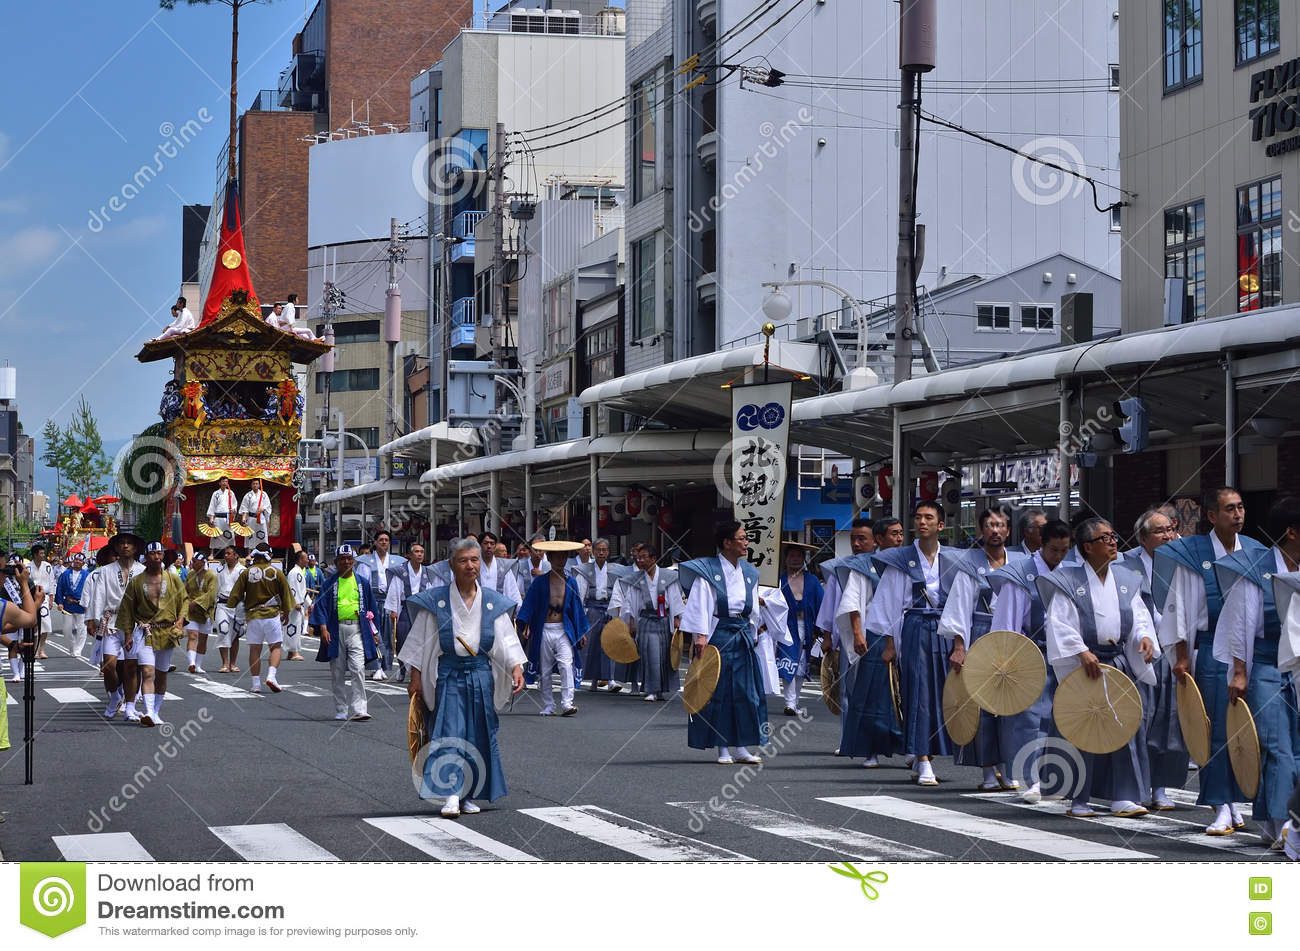 Parade of Gion festival, Kyoto Japan in summer.